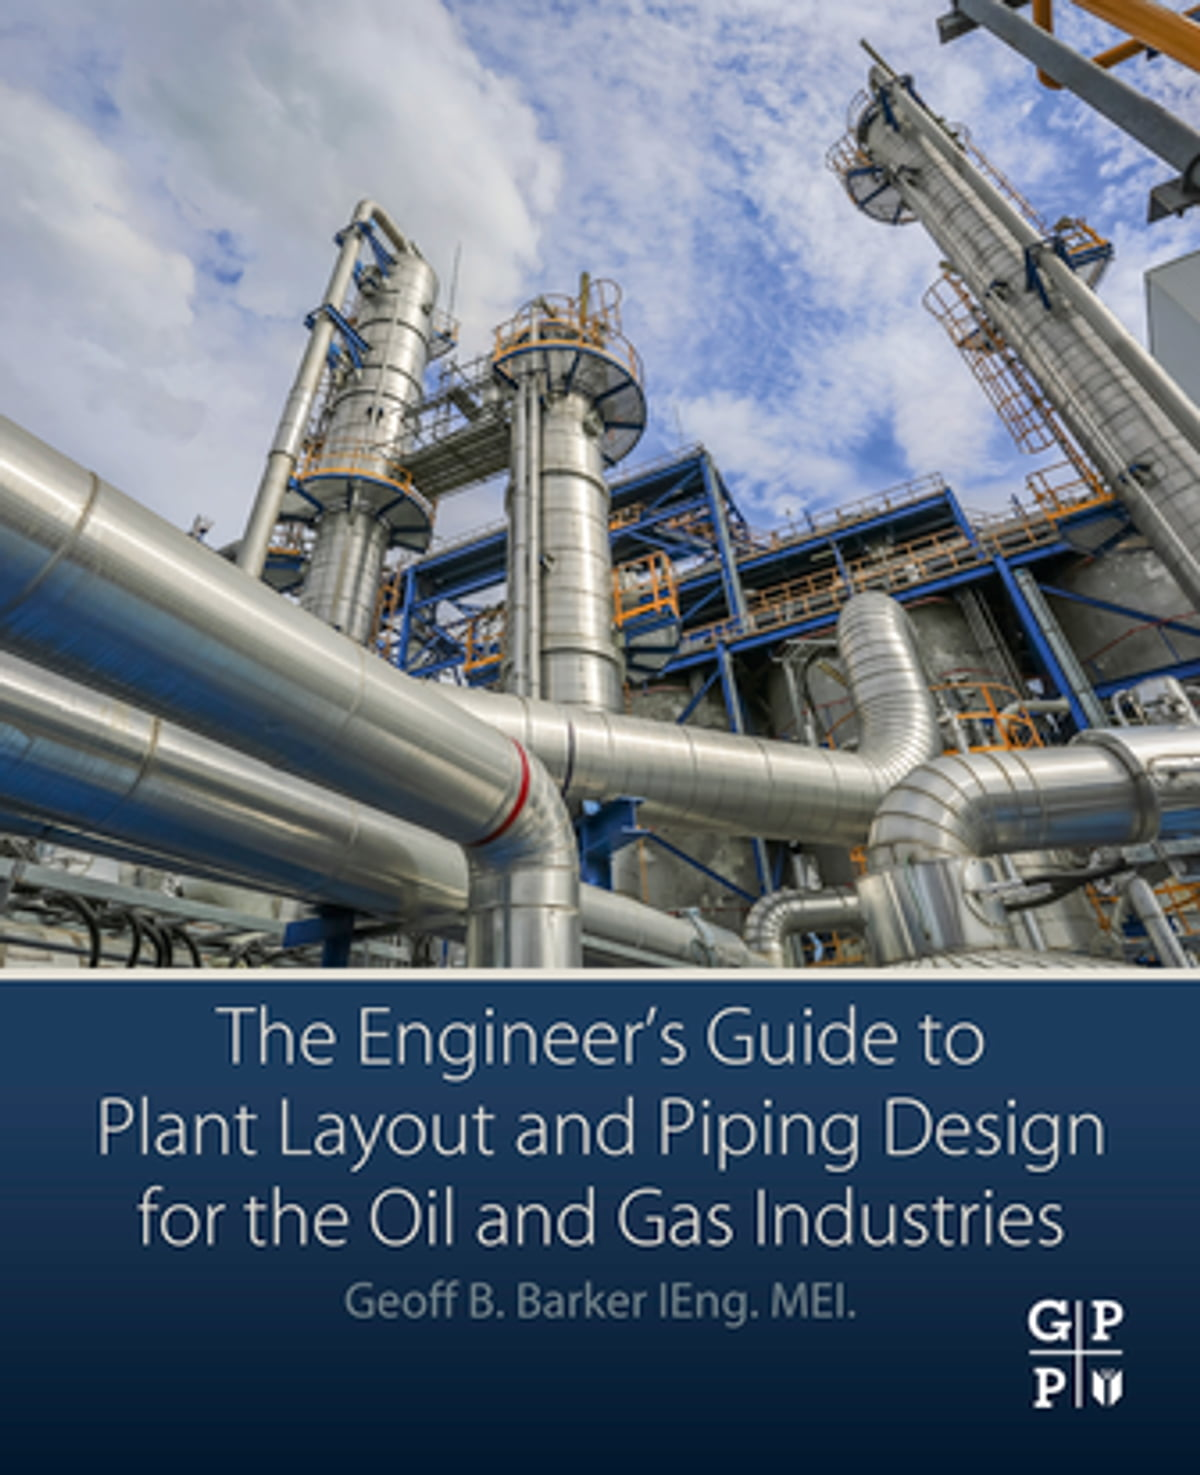 hight resolution of the engineer s guide to plant layout and piping design for the oil and gas industries ebook by geoff b barker 9780128146545 rakuten kobo